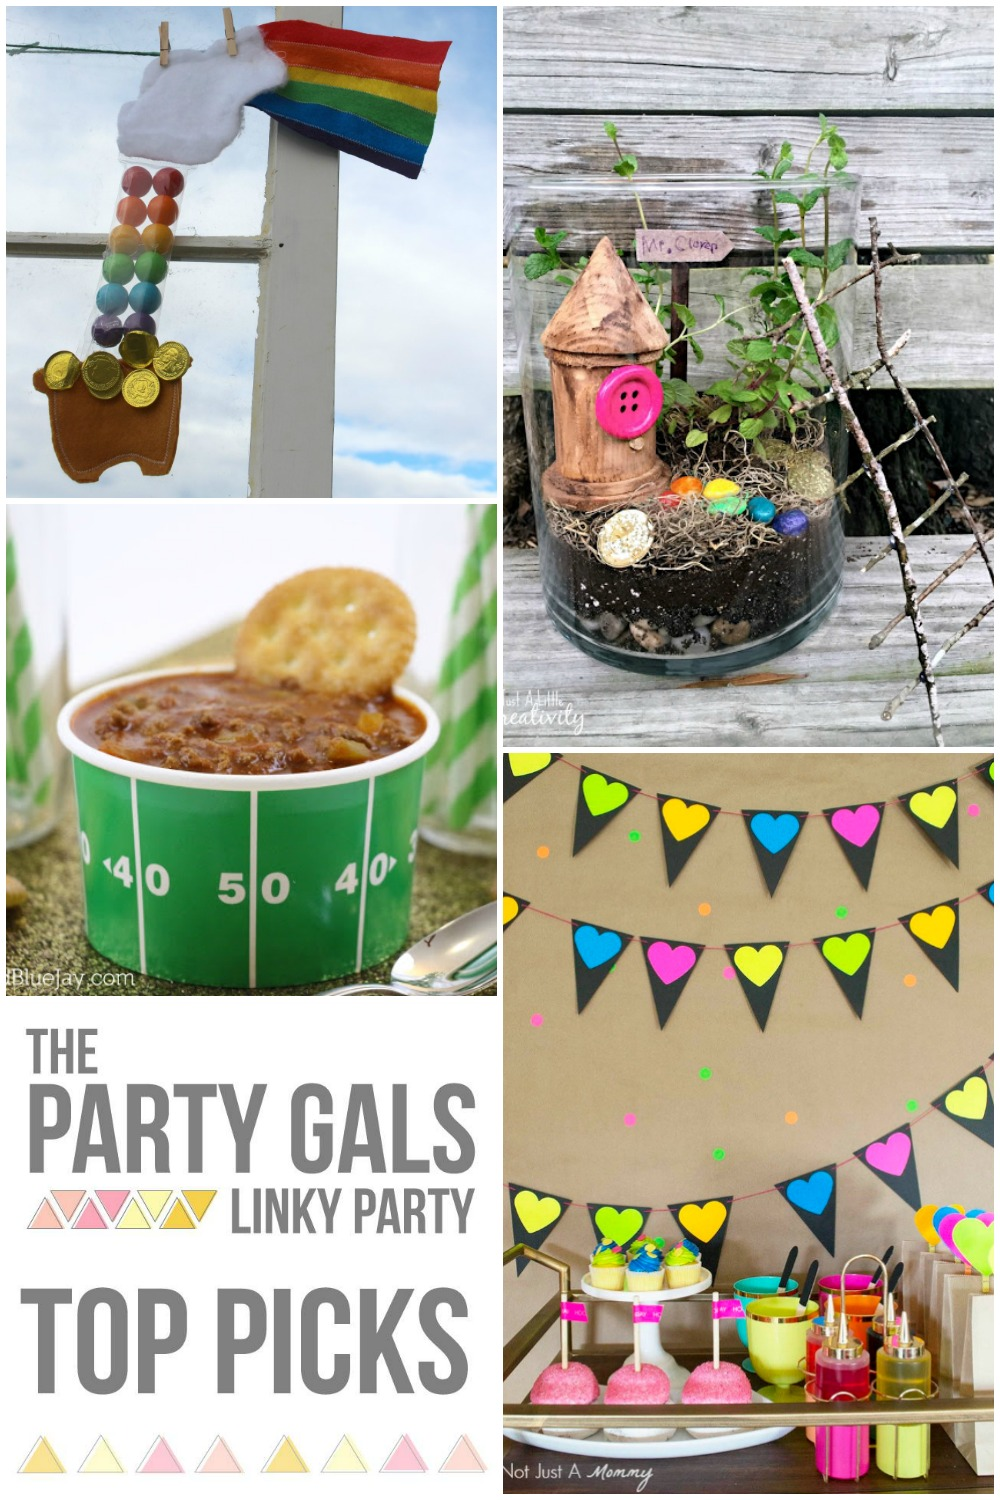 The Party Gals Top Picks